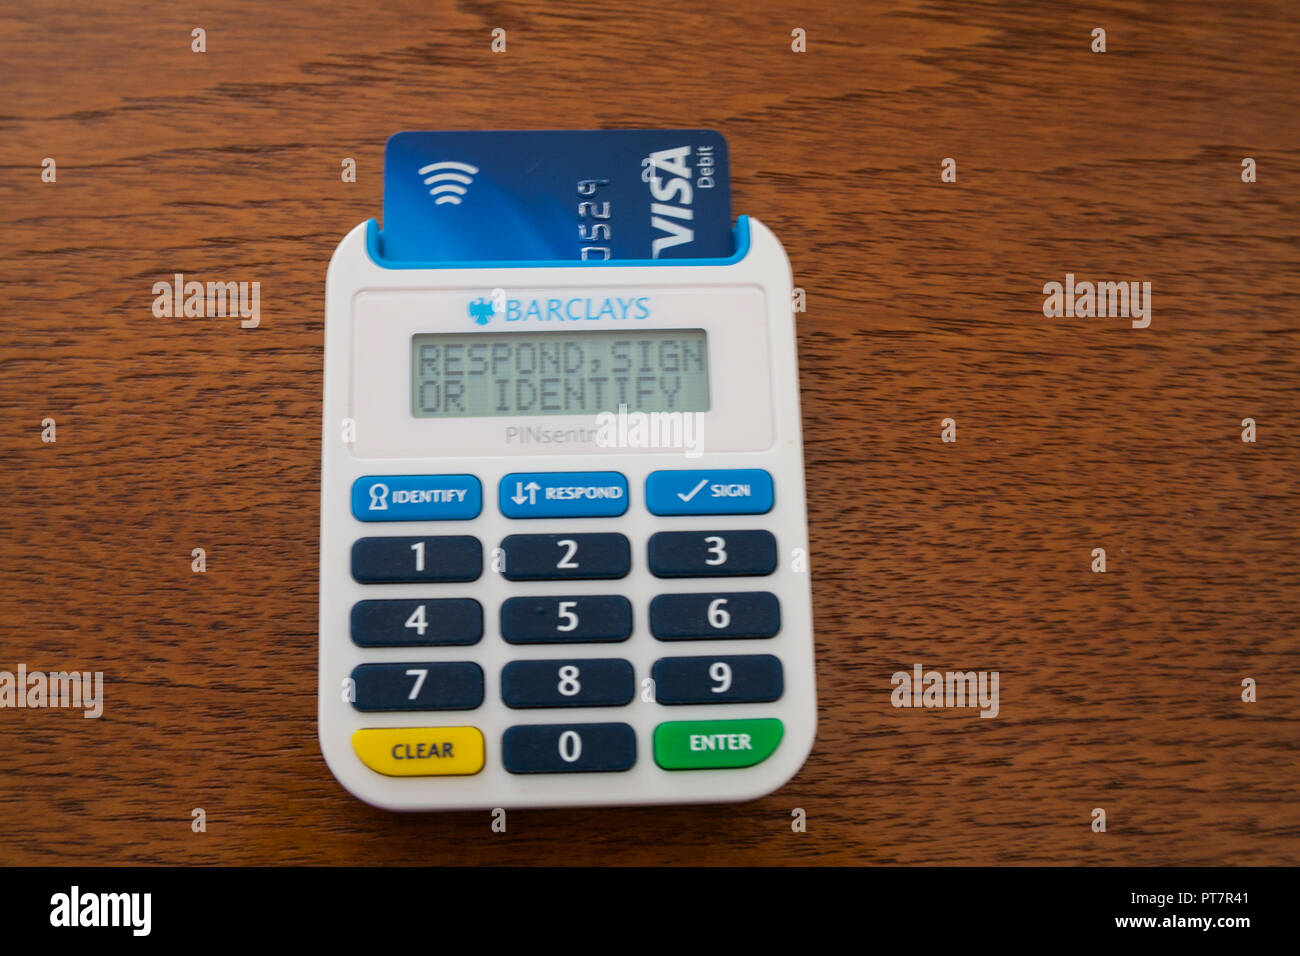 Pinsentry Card Reader For Access To Barclays Online Banking Features With Extra Layer Of Security Debit Card Inserted To Access Current Account Stock Photo Alamy